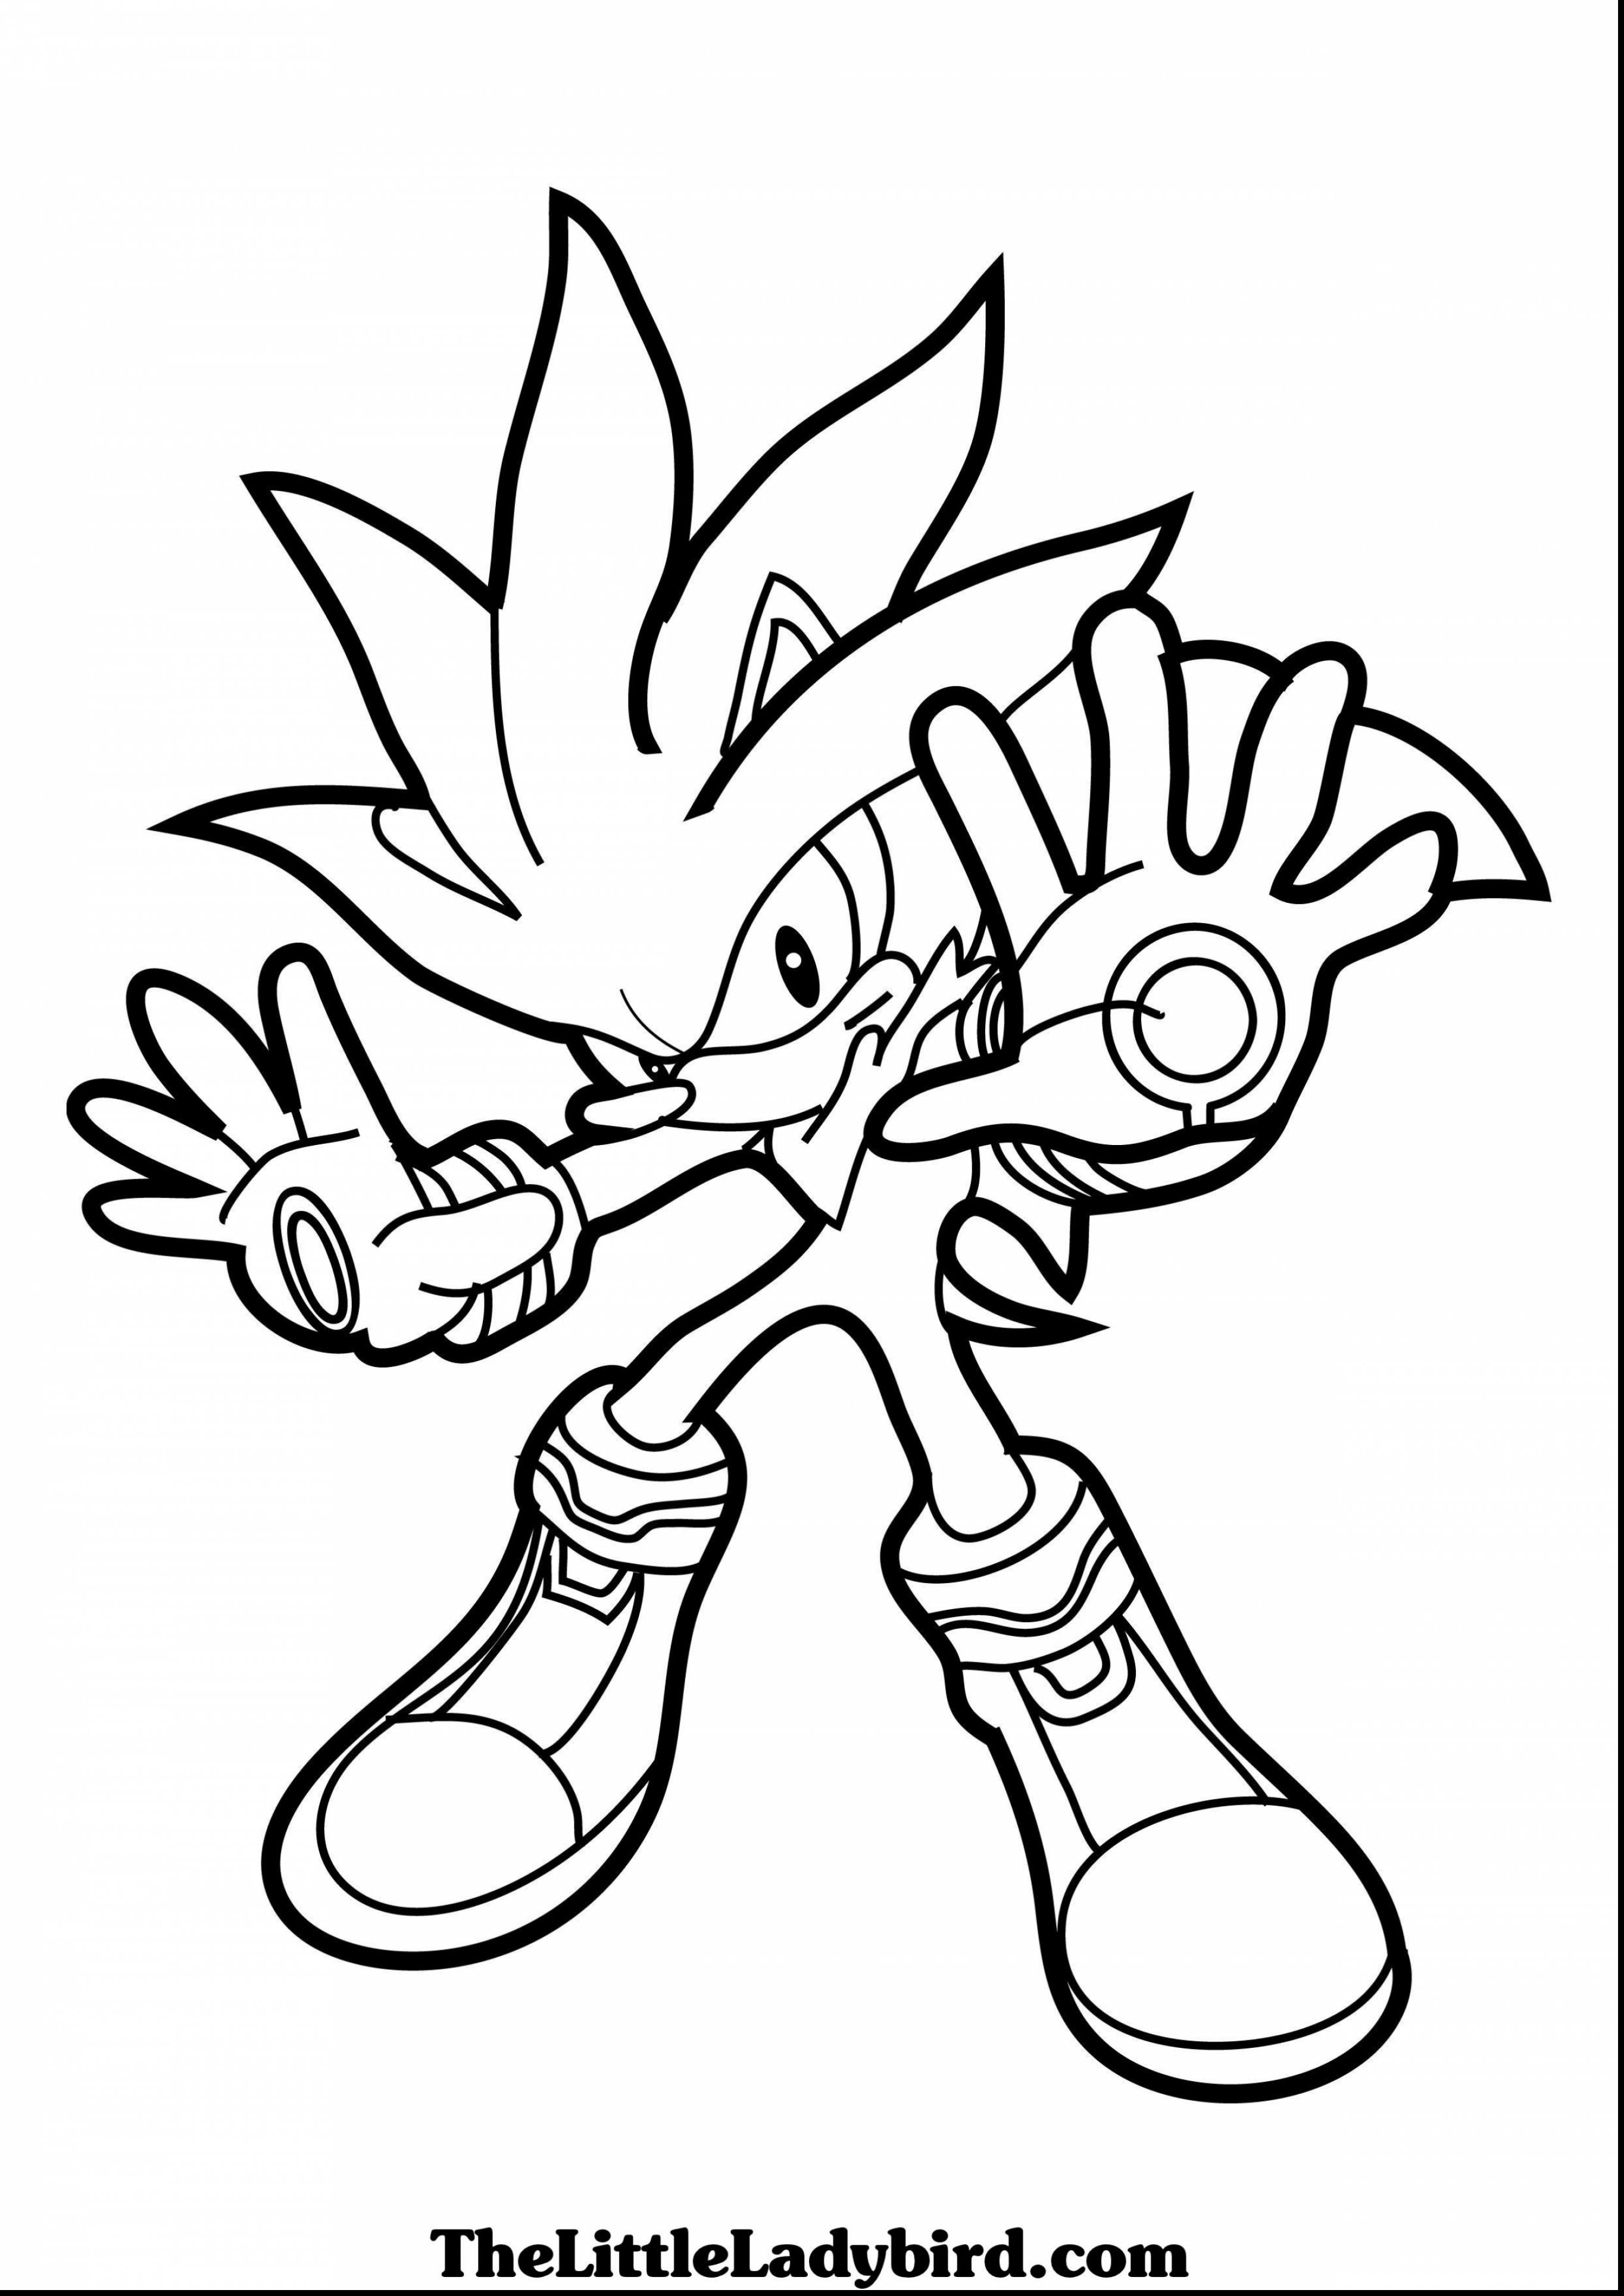 2728x3858 Unlimited Silver The Hedgehog Coloring Pages S